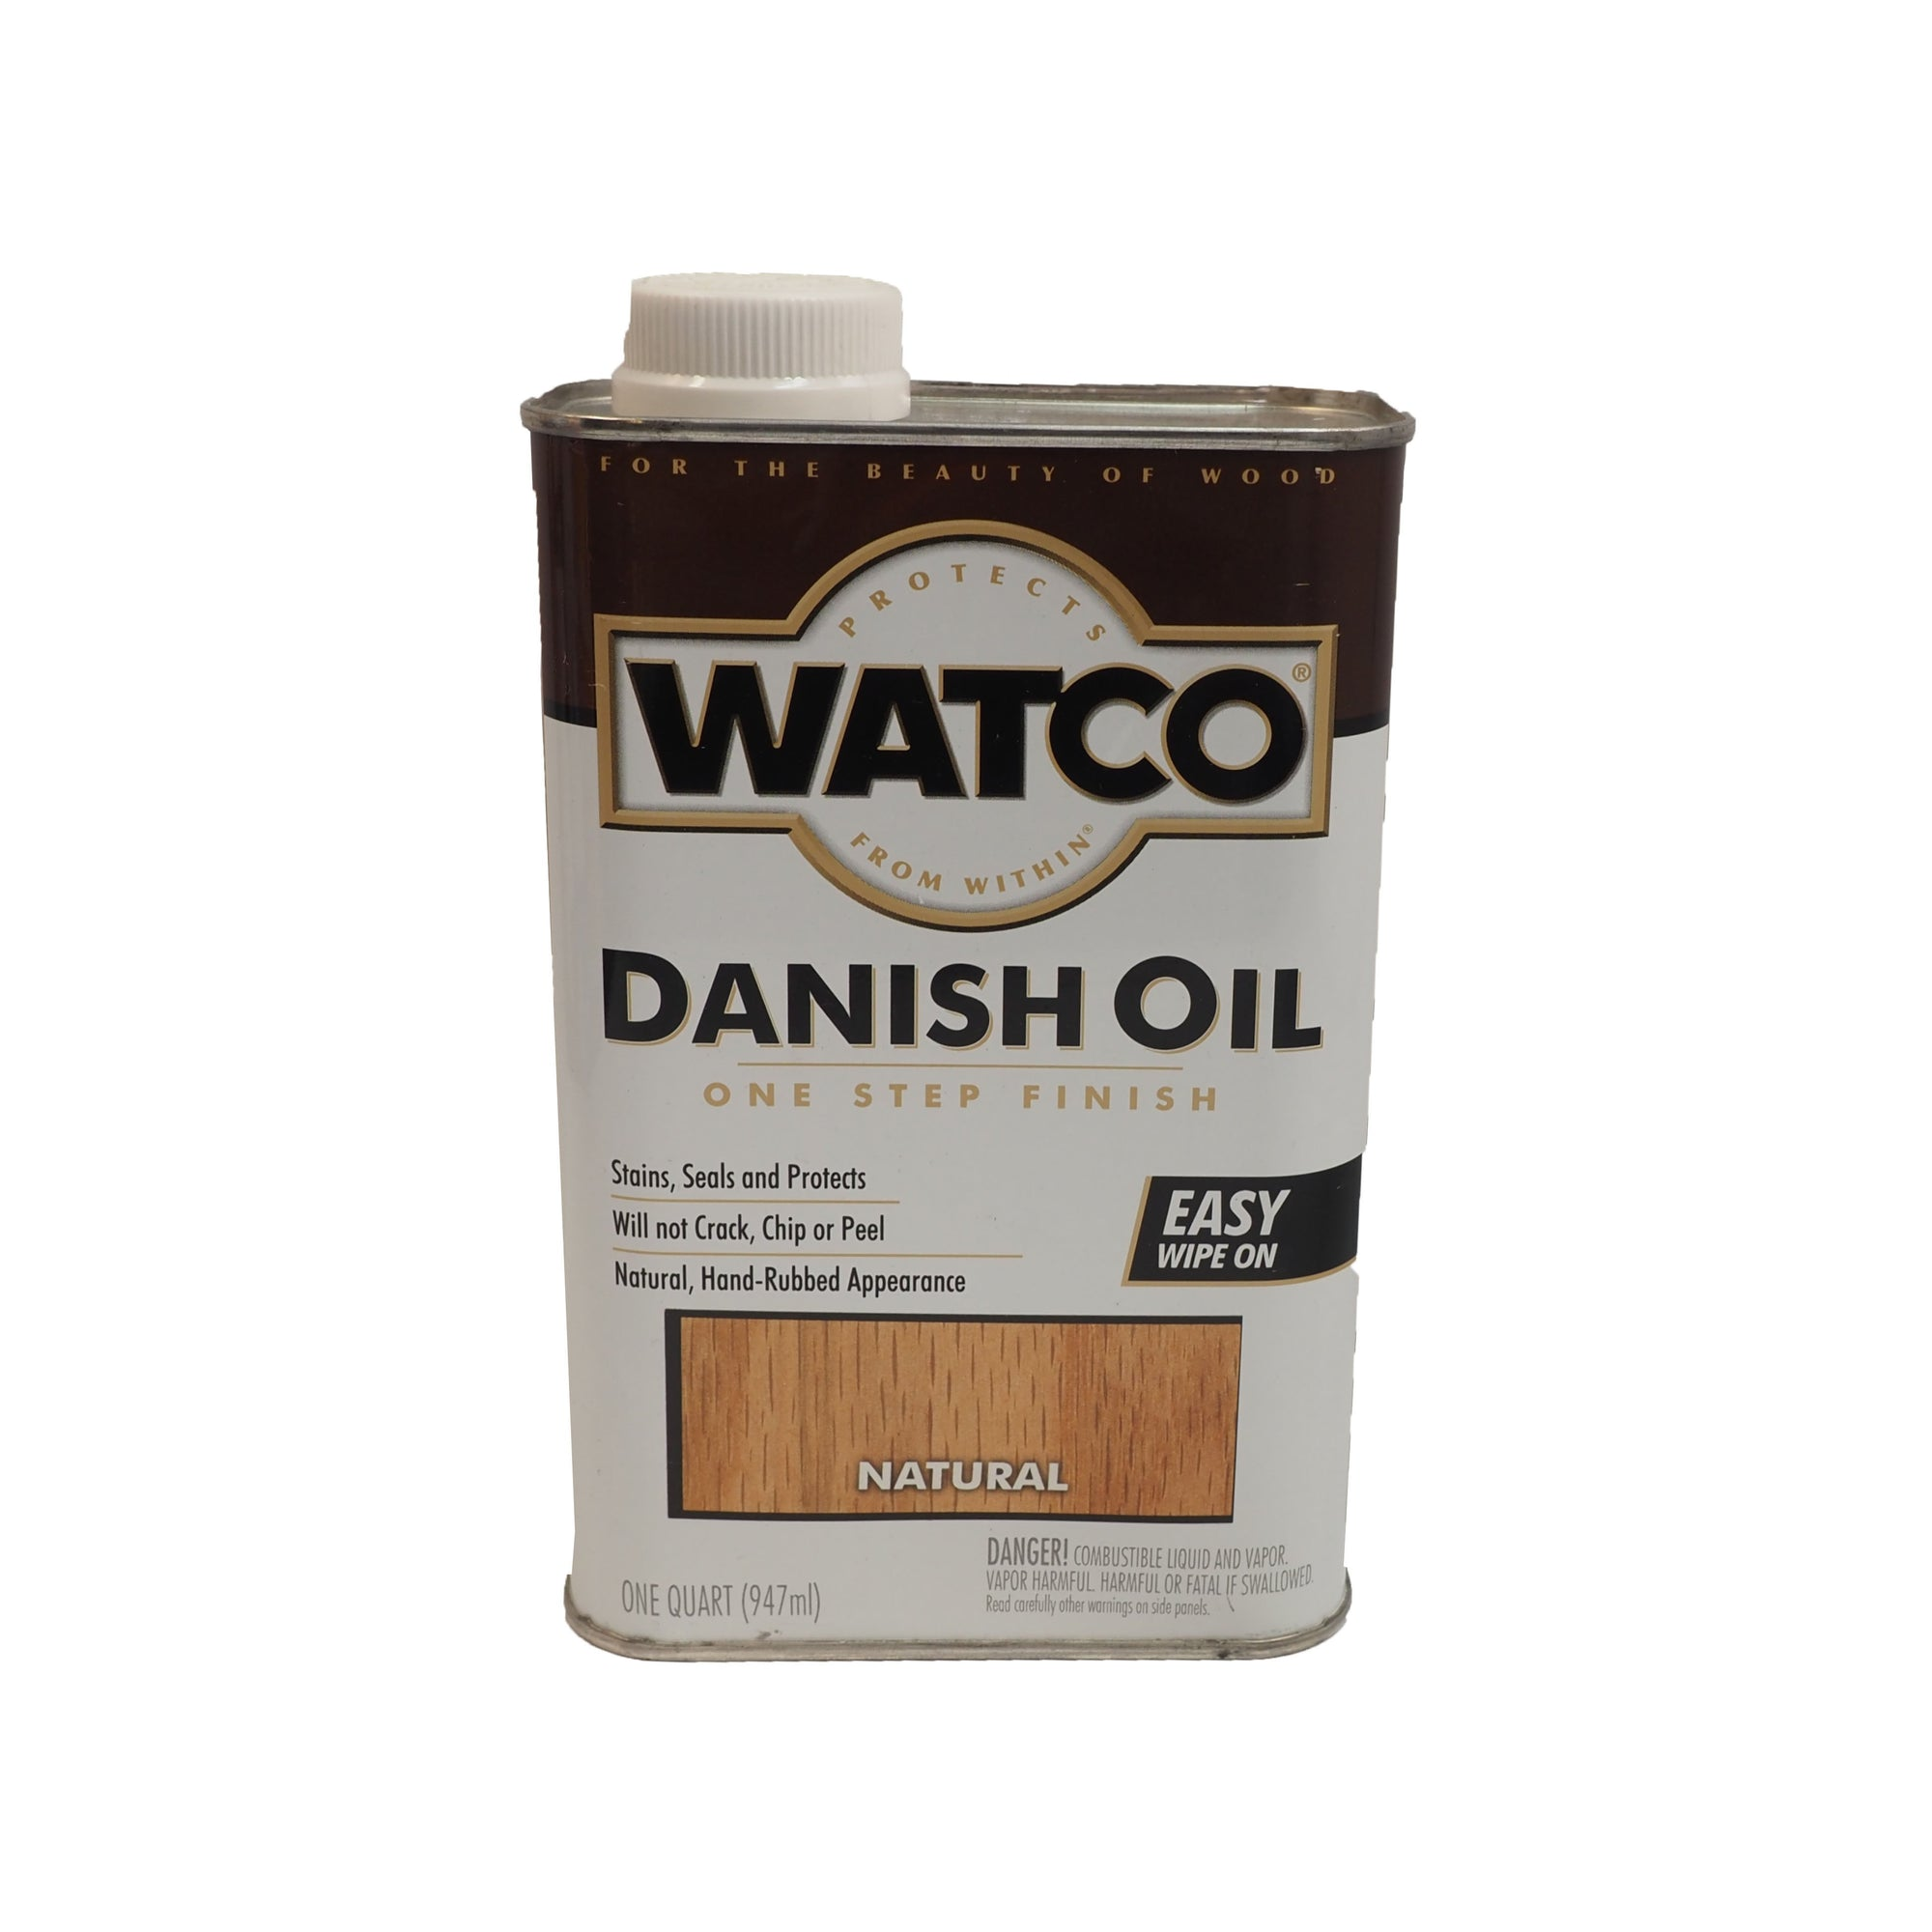 Watco Danish Oil, available at Catalina Paints in CA.